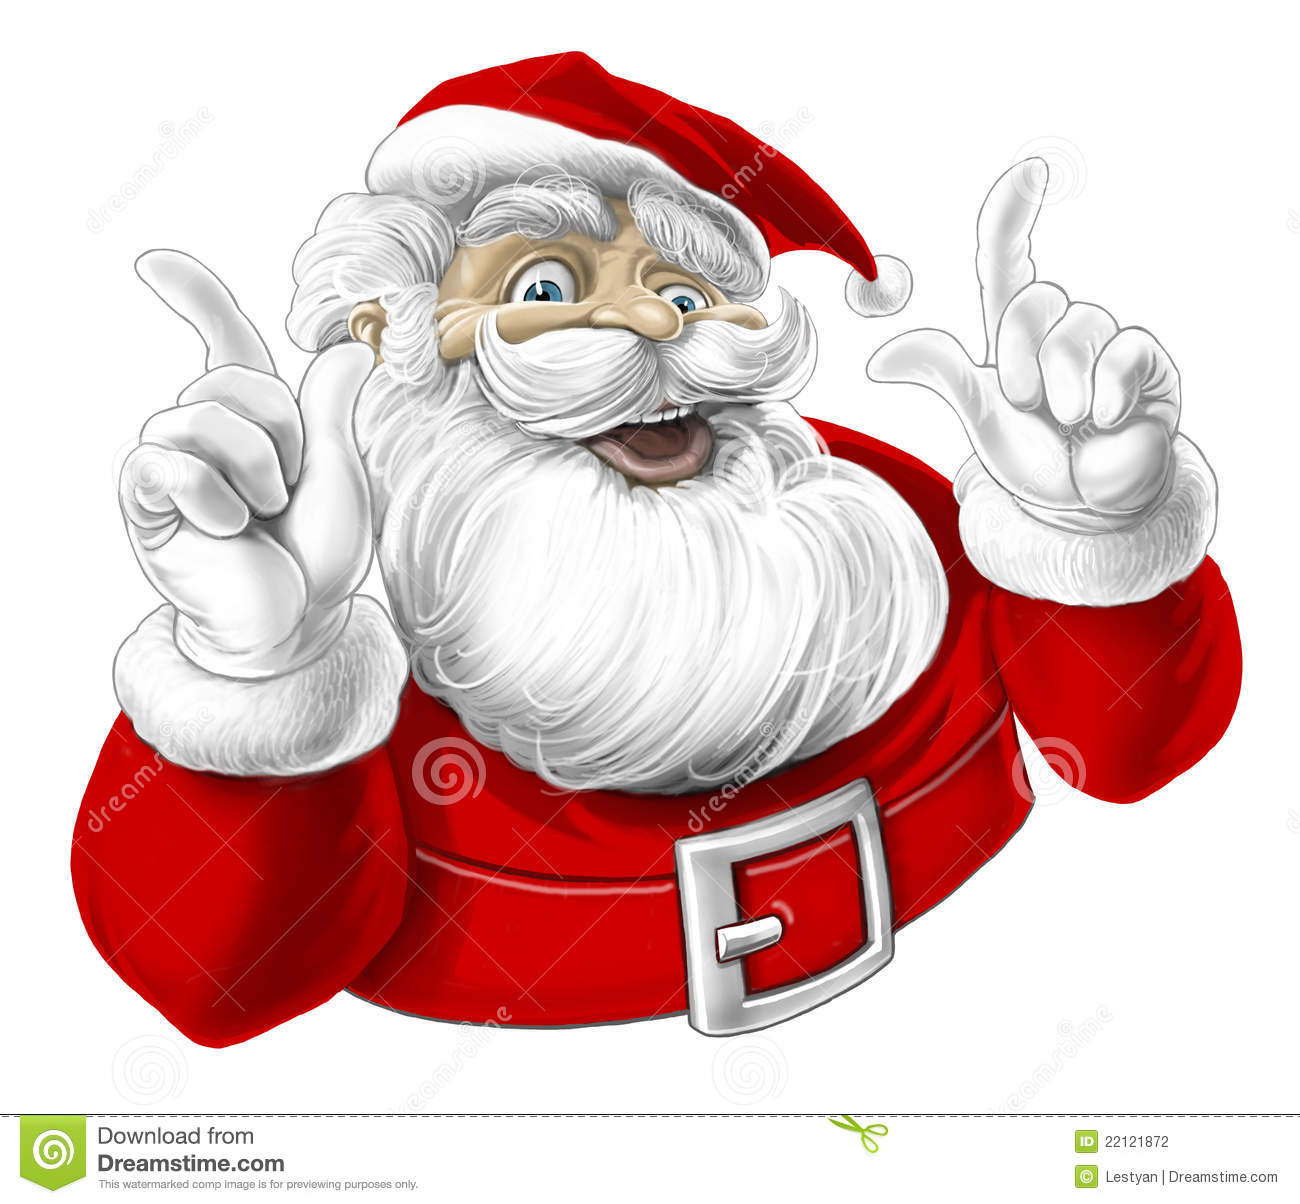 Illustration of funny Santa Claus on white background (Hand drawn).